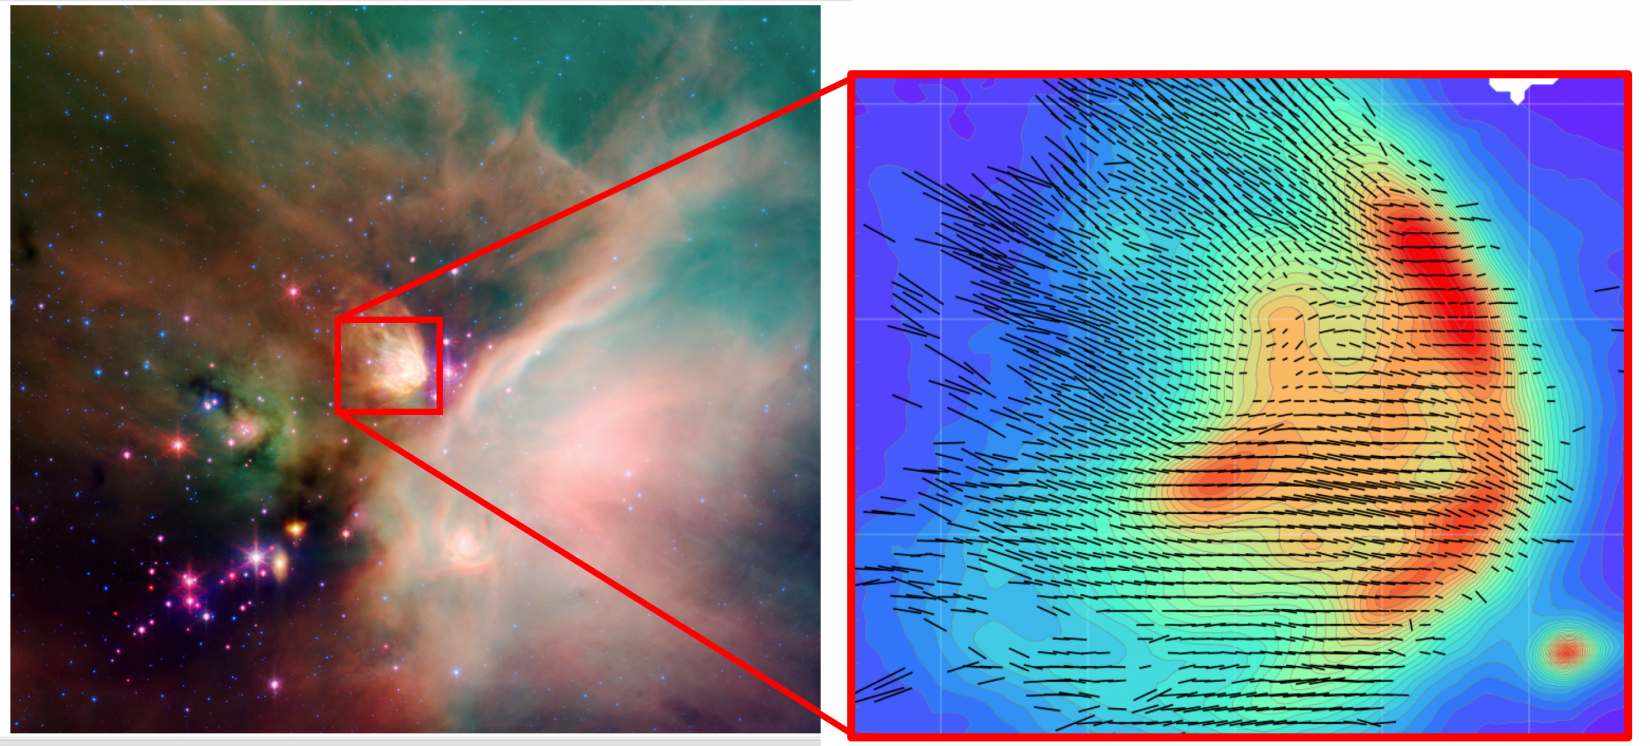 NASA Spitzer image showing the portion of the Rho Oph dark cloud observed and HAWC+ image showing systematic variations in the polarization.